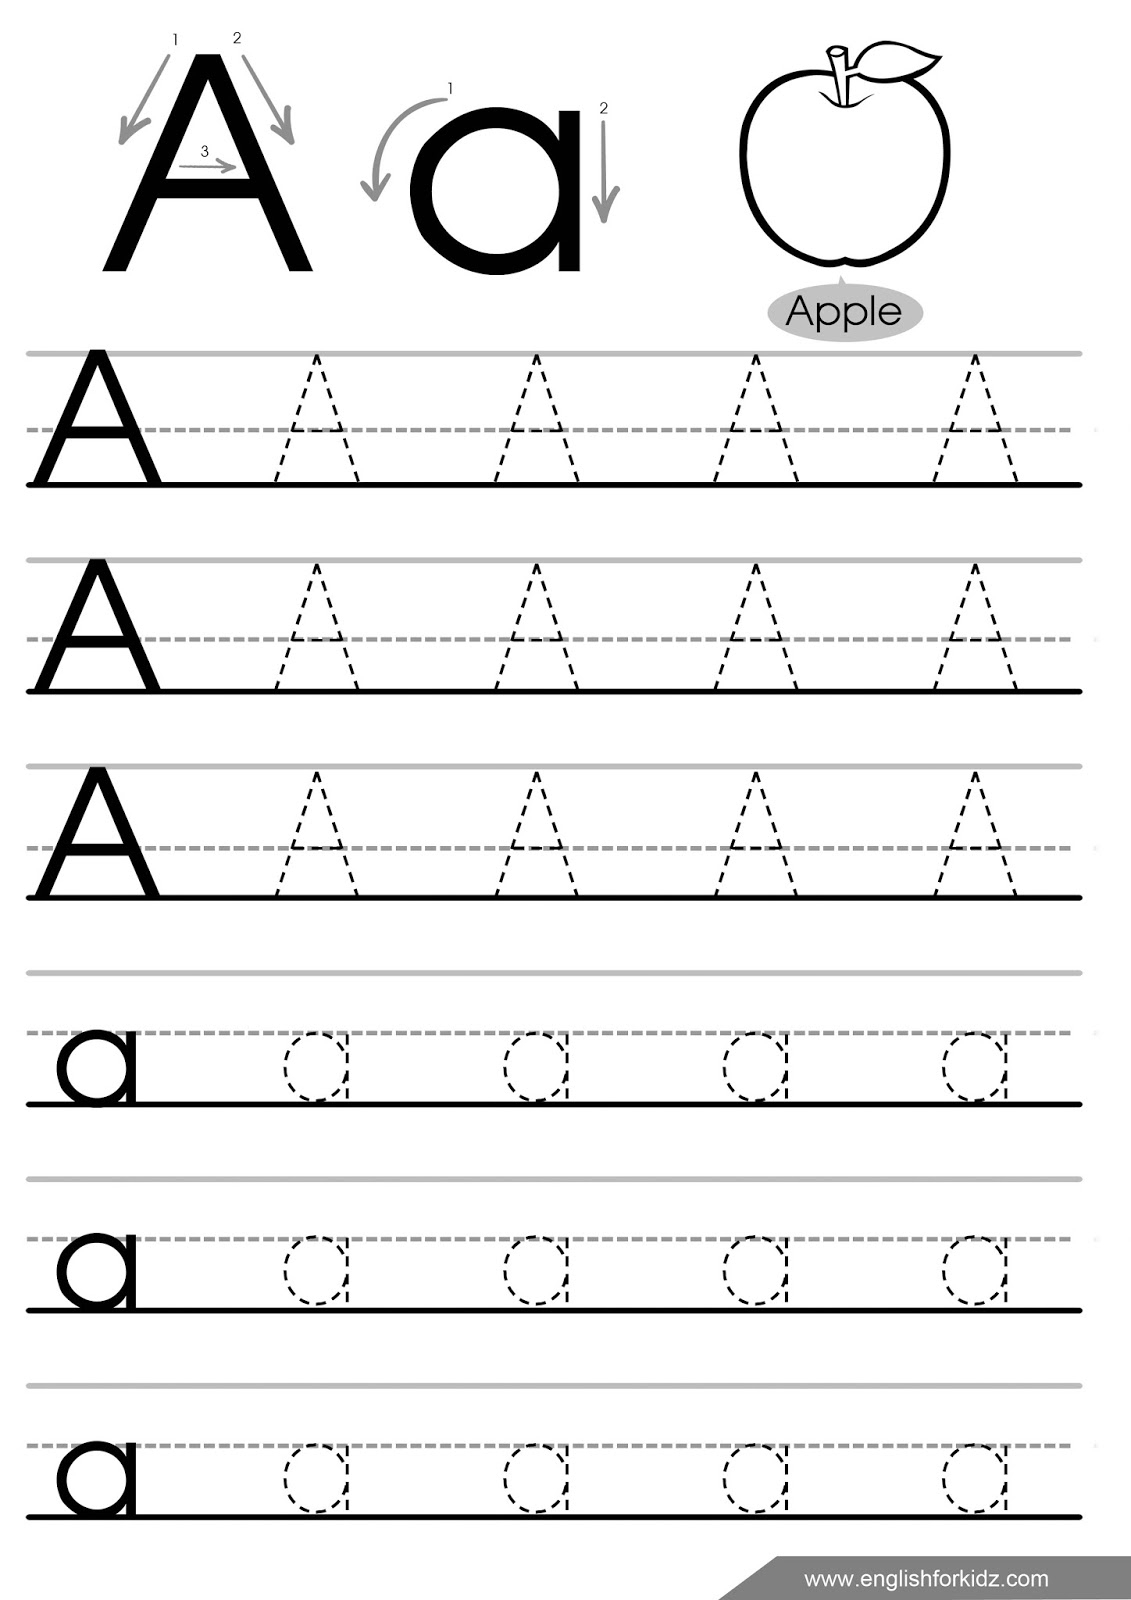 Letter Tracing Worksheets (Letters A - J) within Alphabet Tracing Worksheets For Preschool